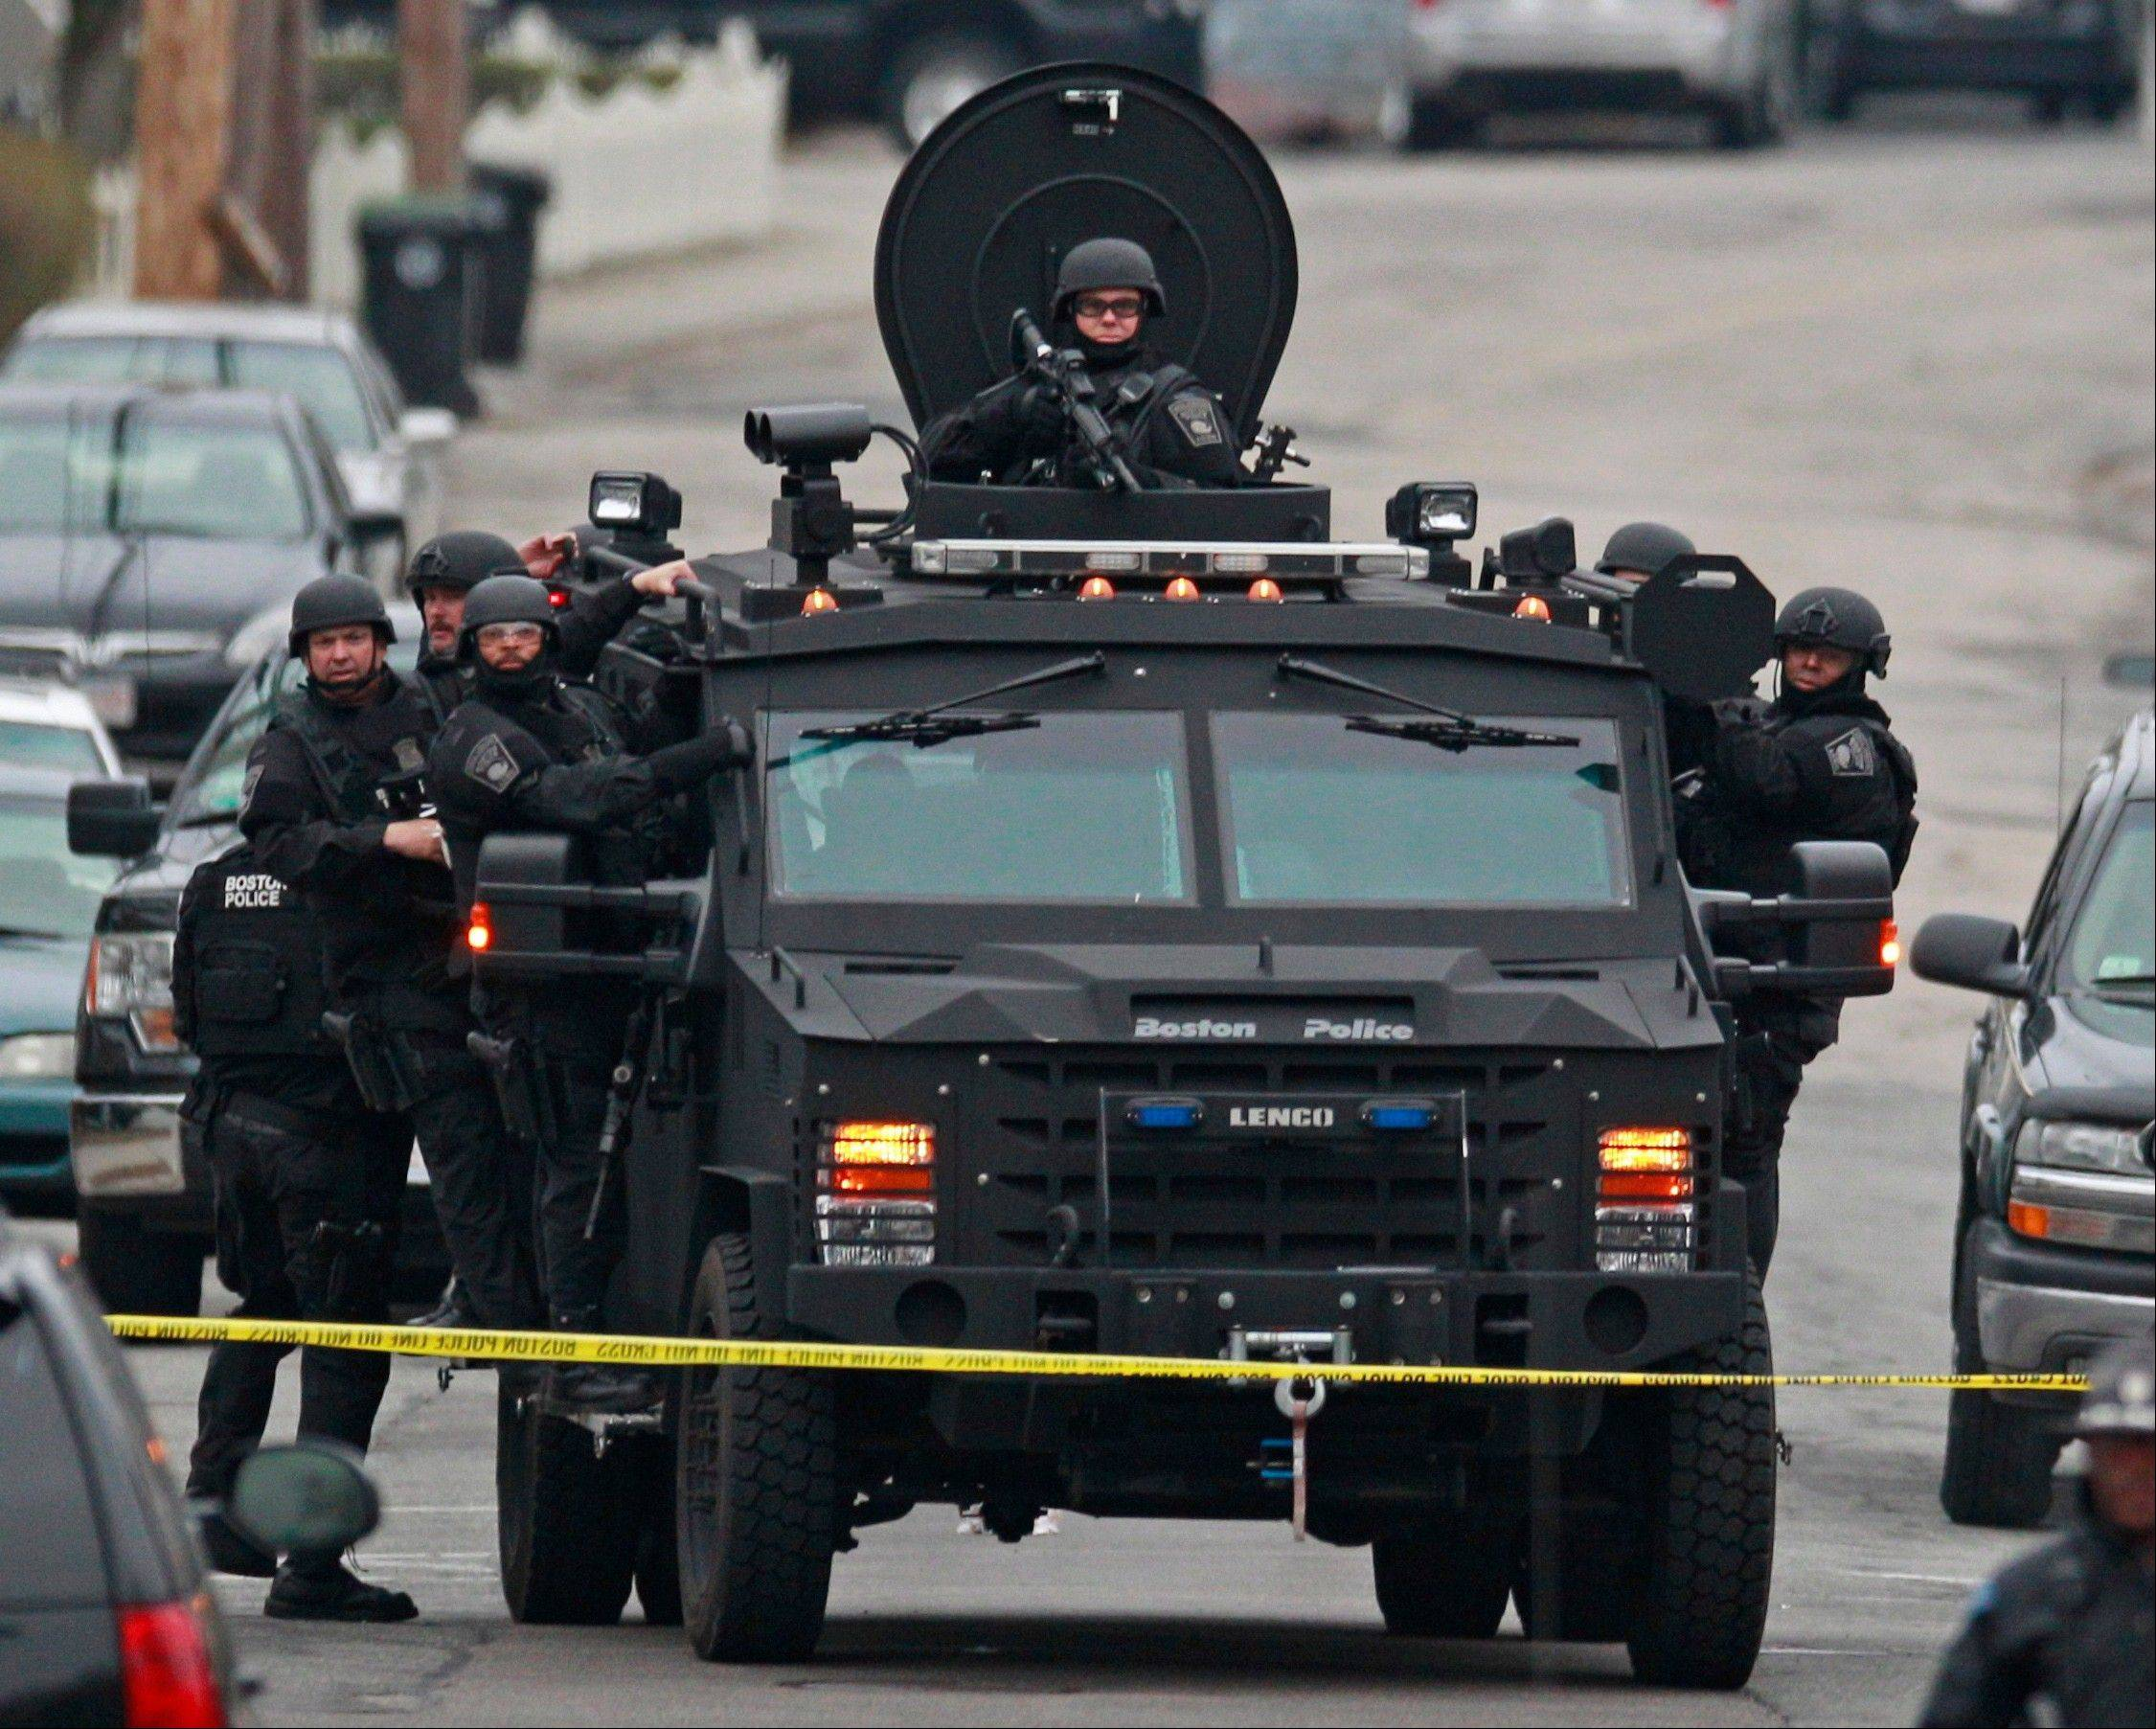 Police in tactical gear arrive on an armored police vehicle as they surround an apartment building while looking for a suspect in the Boston Marathon bombings in Watertown, Mass., Friday, April 19, 2013. The bombs that blew up seconds apart near the finish line of the Boston Marathon left the streets spattered with blood and glass, and gaping questions of who chose to attack and why.